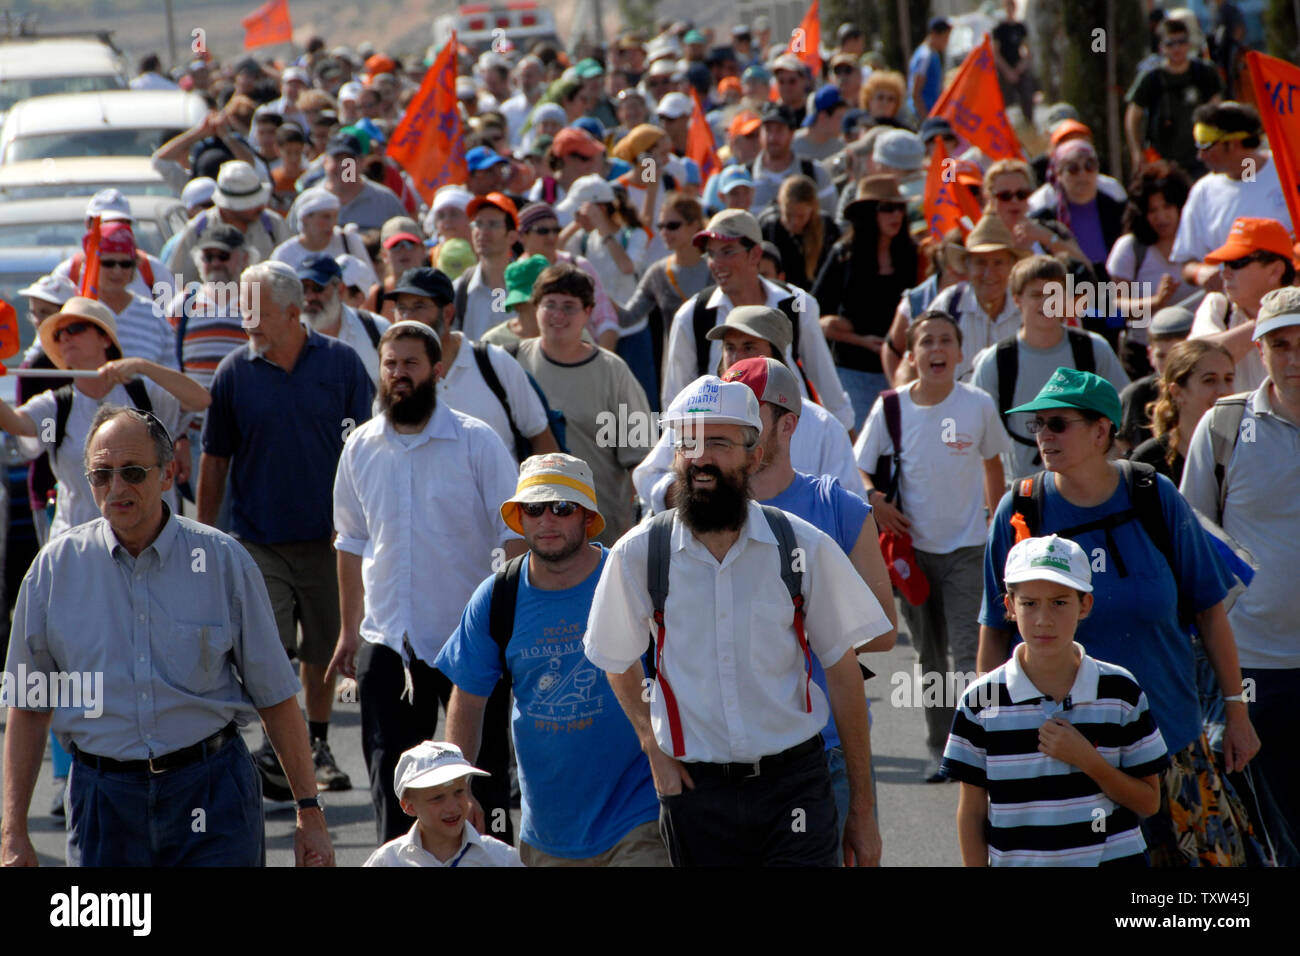 Israeli right-wing settlers march from the Jewish settlement Efrat in the West Bank to Givat Ha'Eitam to start a new settler outpost, September 30, 2007.   (UPI Photo/ Debbie Hill) - Stock Image